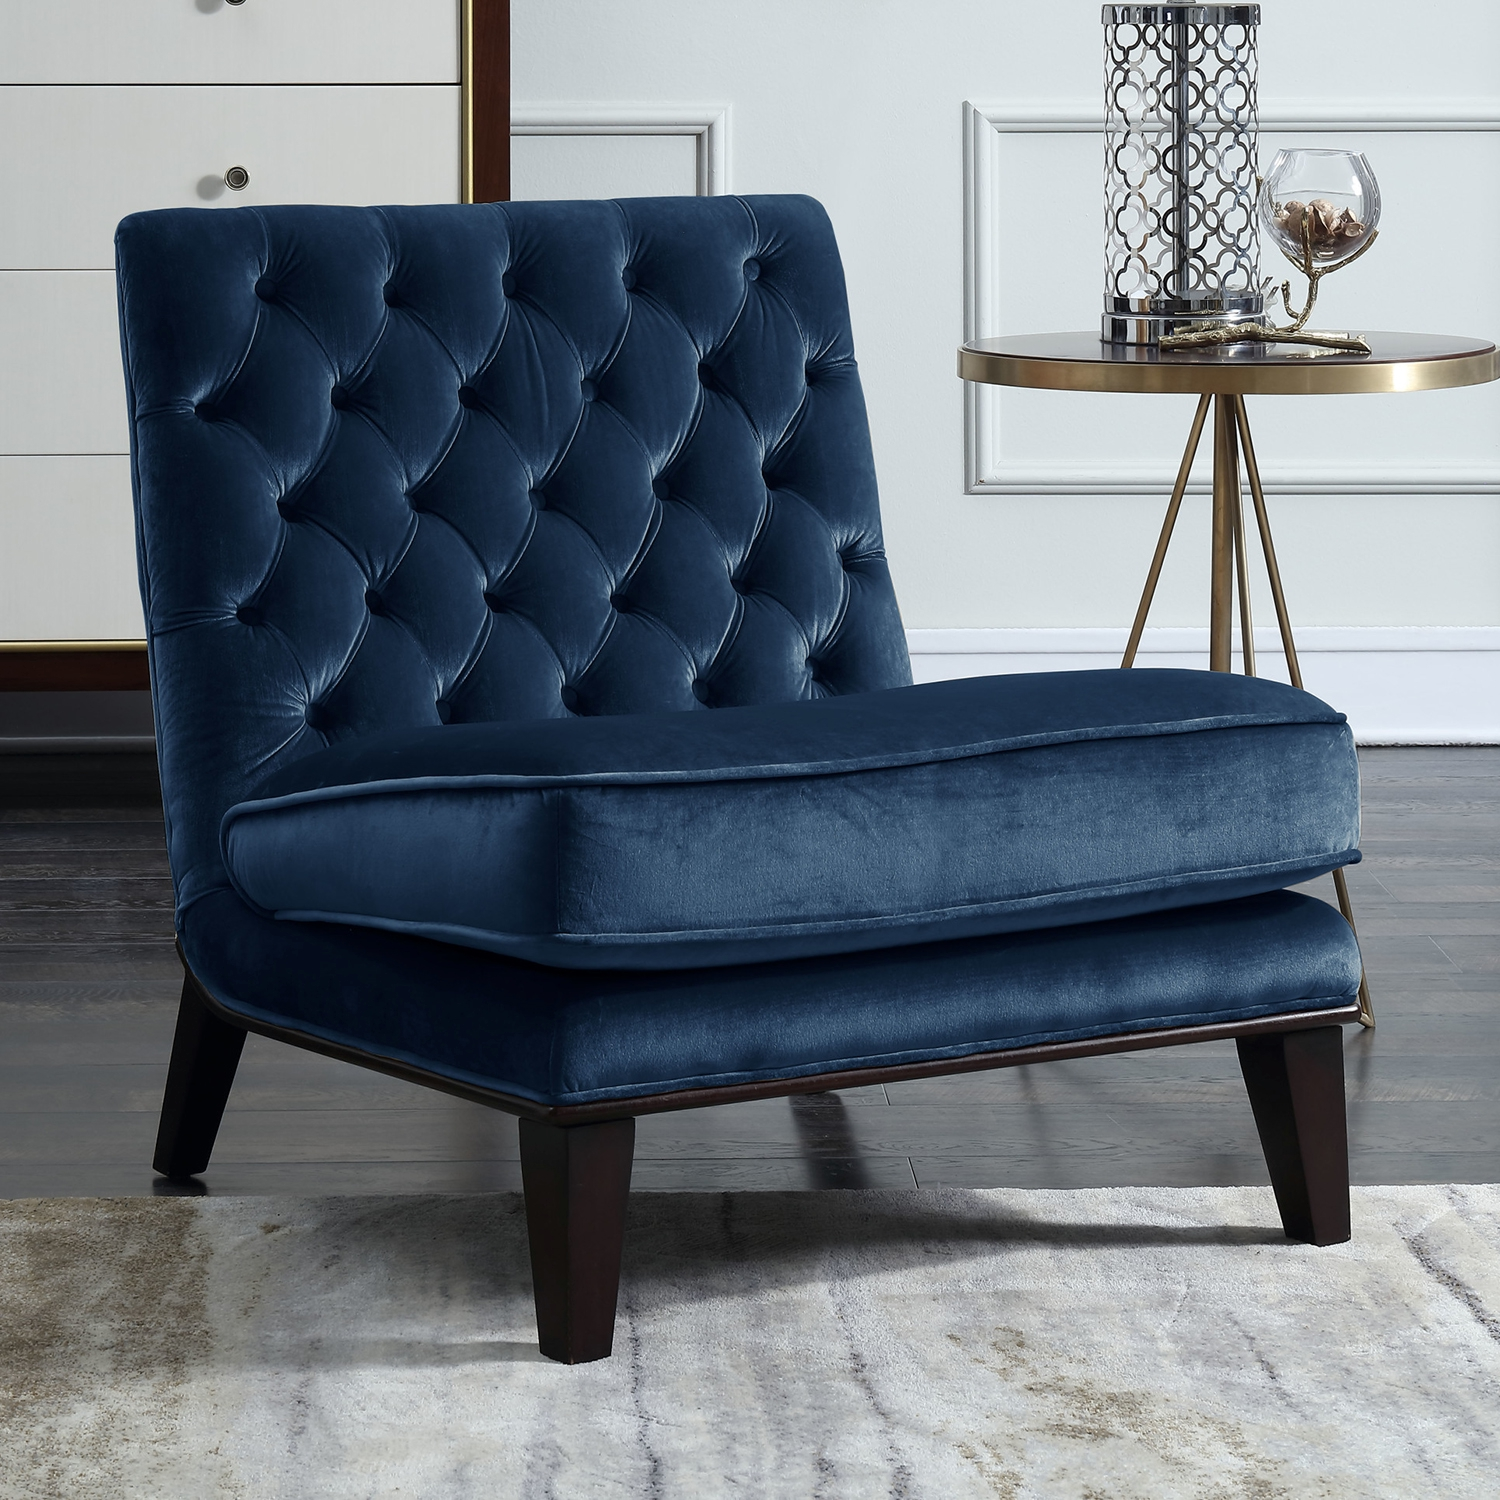 Chic Home FAC2695 DR Achilles Accent Slipper Chair in Tufted Navy